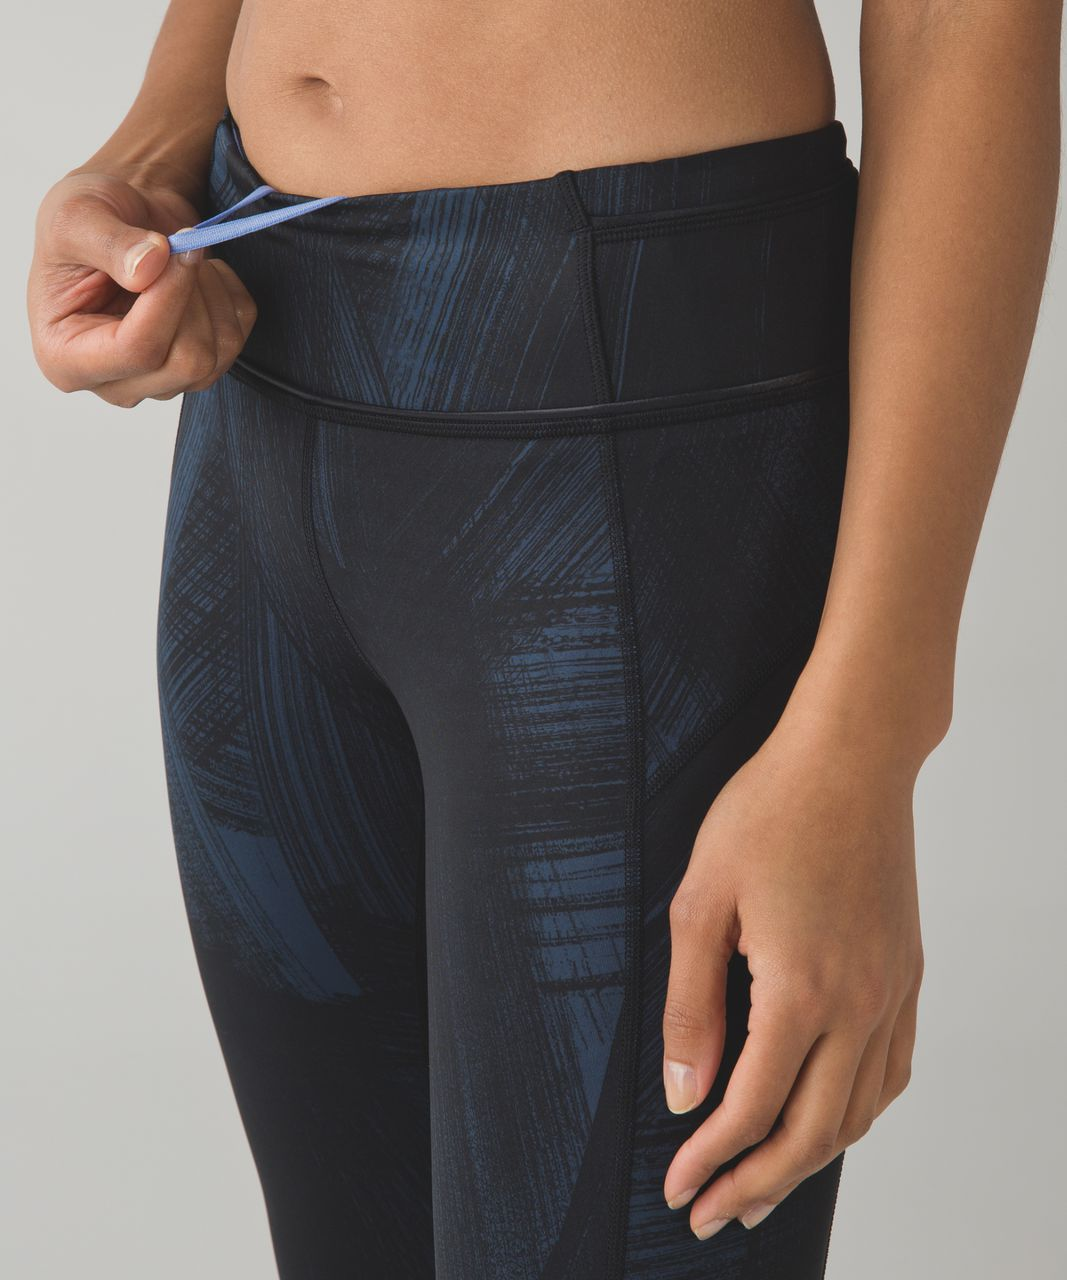 Lululemon Pace Queen Tight *Full-On Luxtreme - Wind Chill Deep Navy Black